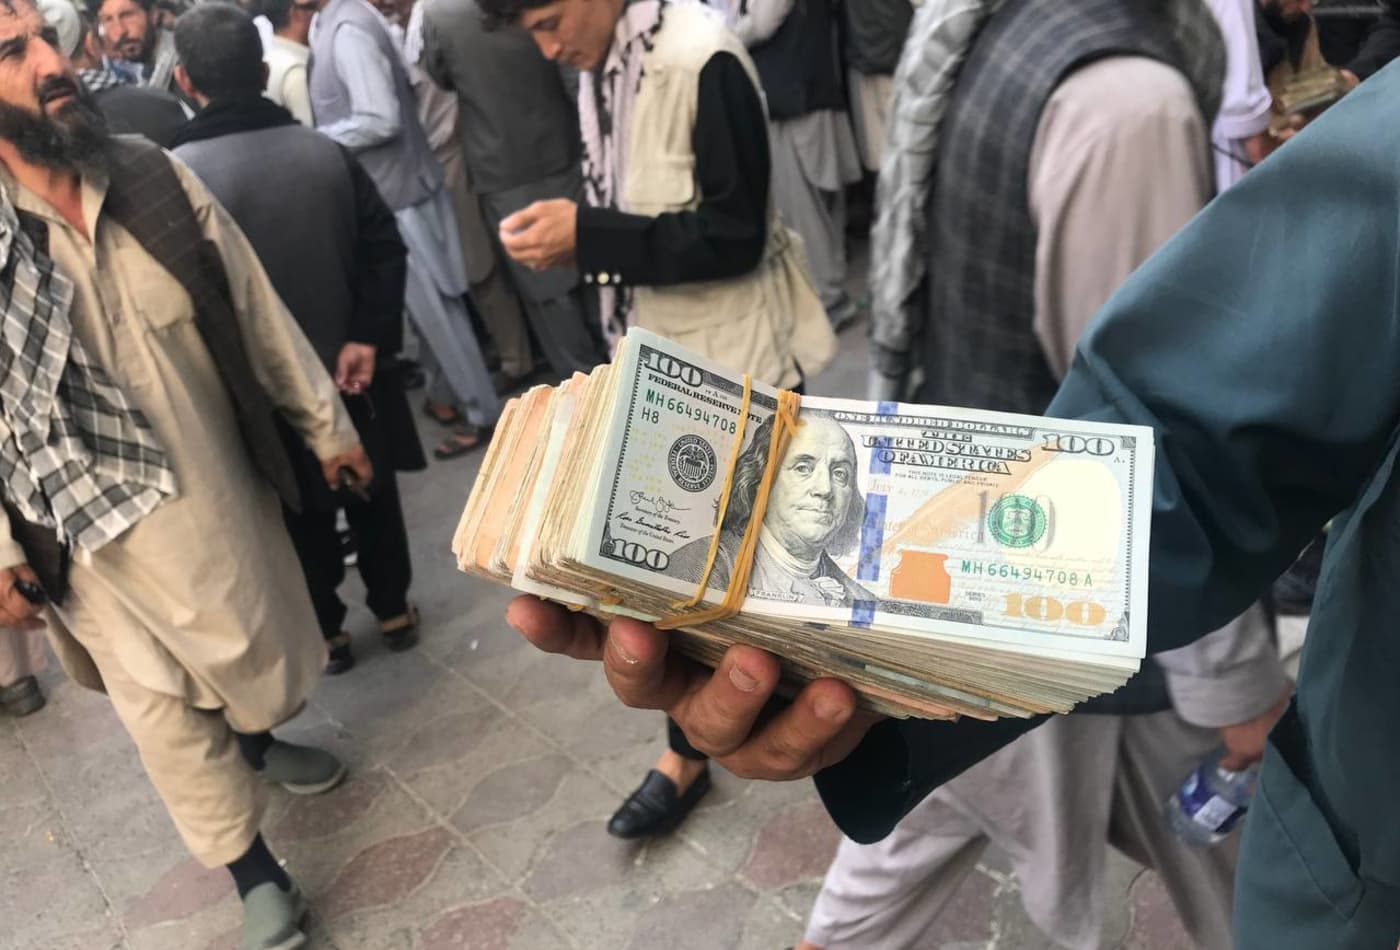 '9/11 millionaires' and mass corruption: How American money helped break Afghanistan